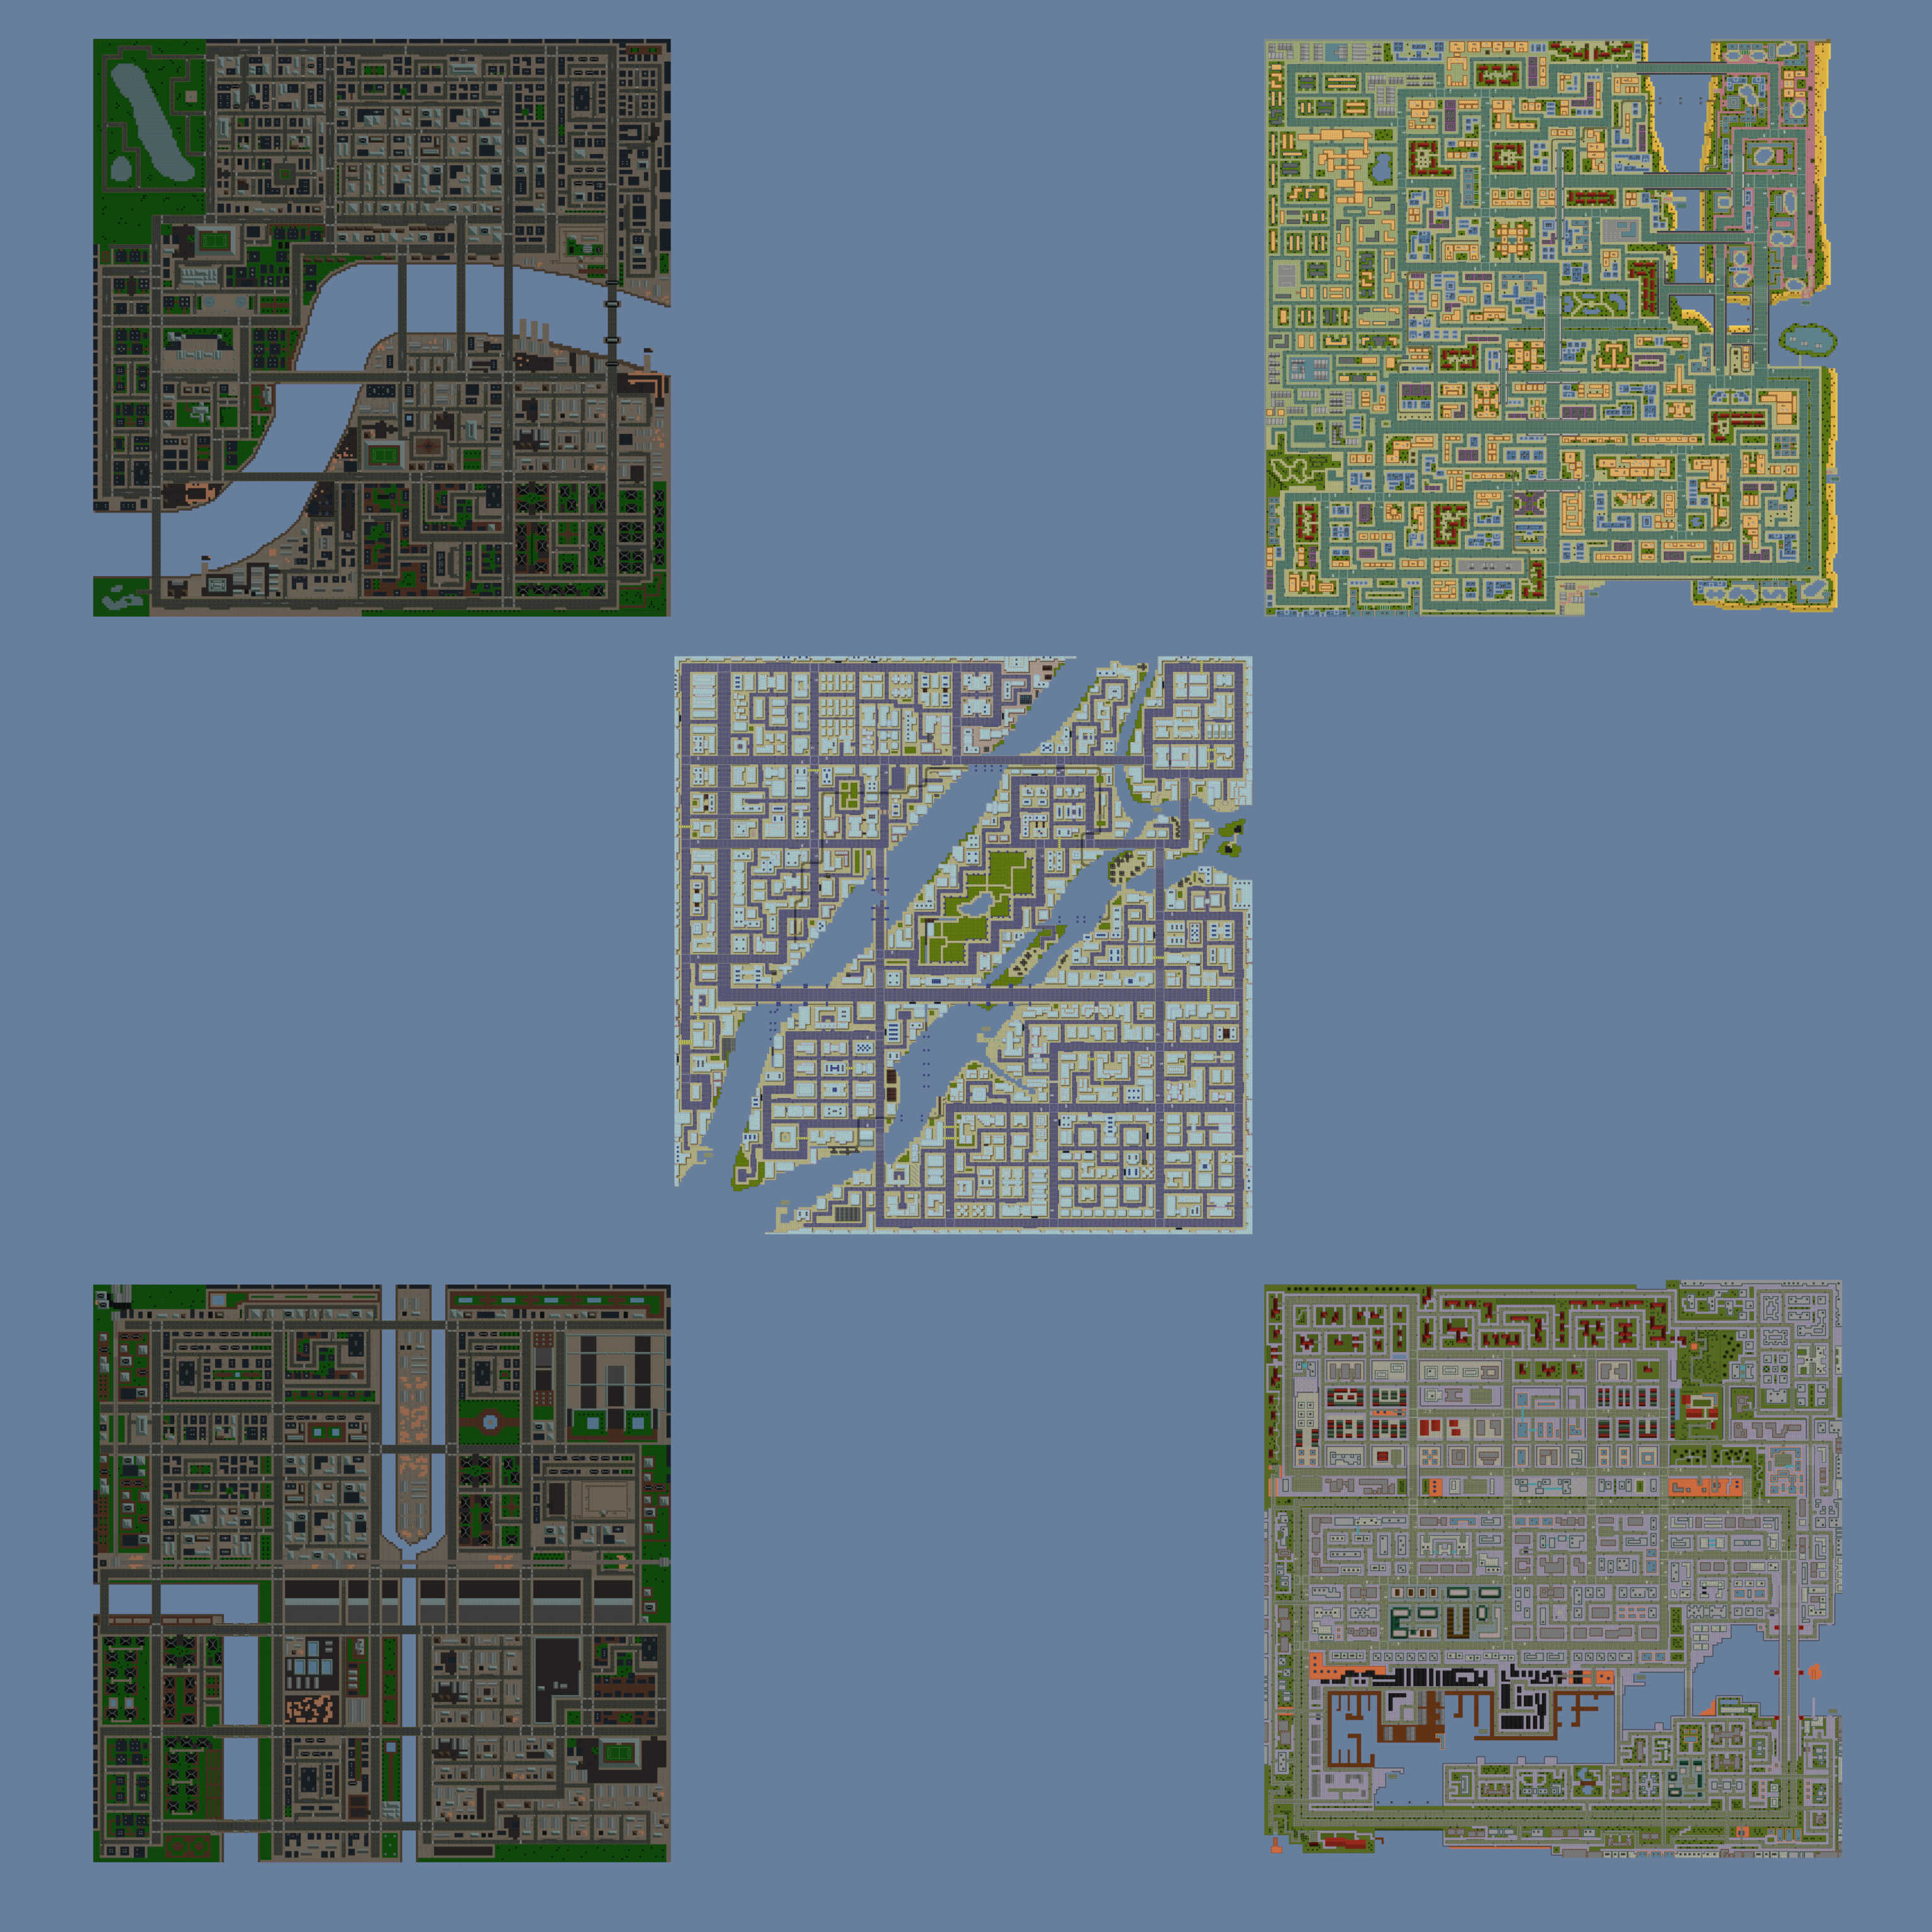 starcraft 1 map, devil may cry 1 map, kingdom hearts 1 map, test drive unlimited 1 map, euro truck simulator 1 map, halo 1 map, mass effect 1 map, grand theft auto 1 map, the sims 1 map, manhunt 1 map, just cause 1 map, doom 1 map, need for speed underground 1 map, bioshock 1 map, prototype 1 map, crash bandicoot 1 map, tomb raider 1 map, on gta 1 vice city map